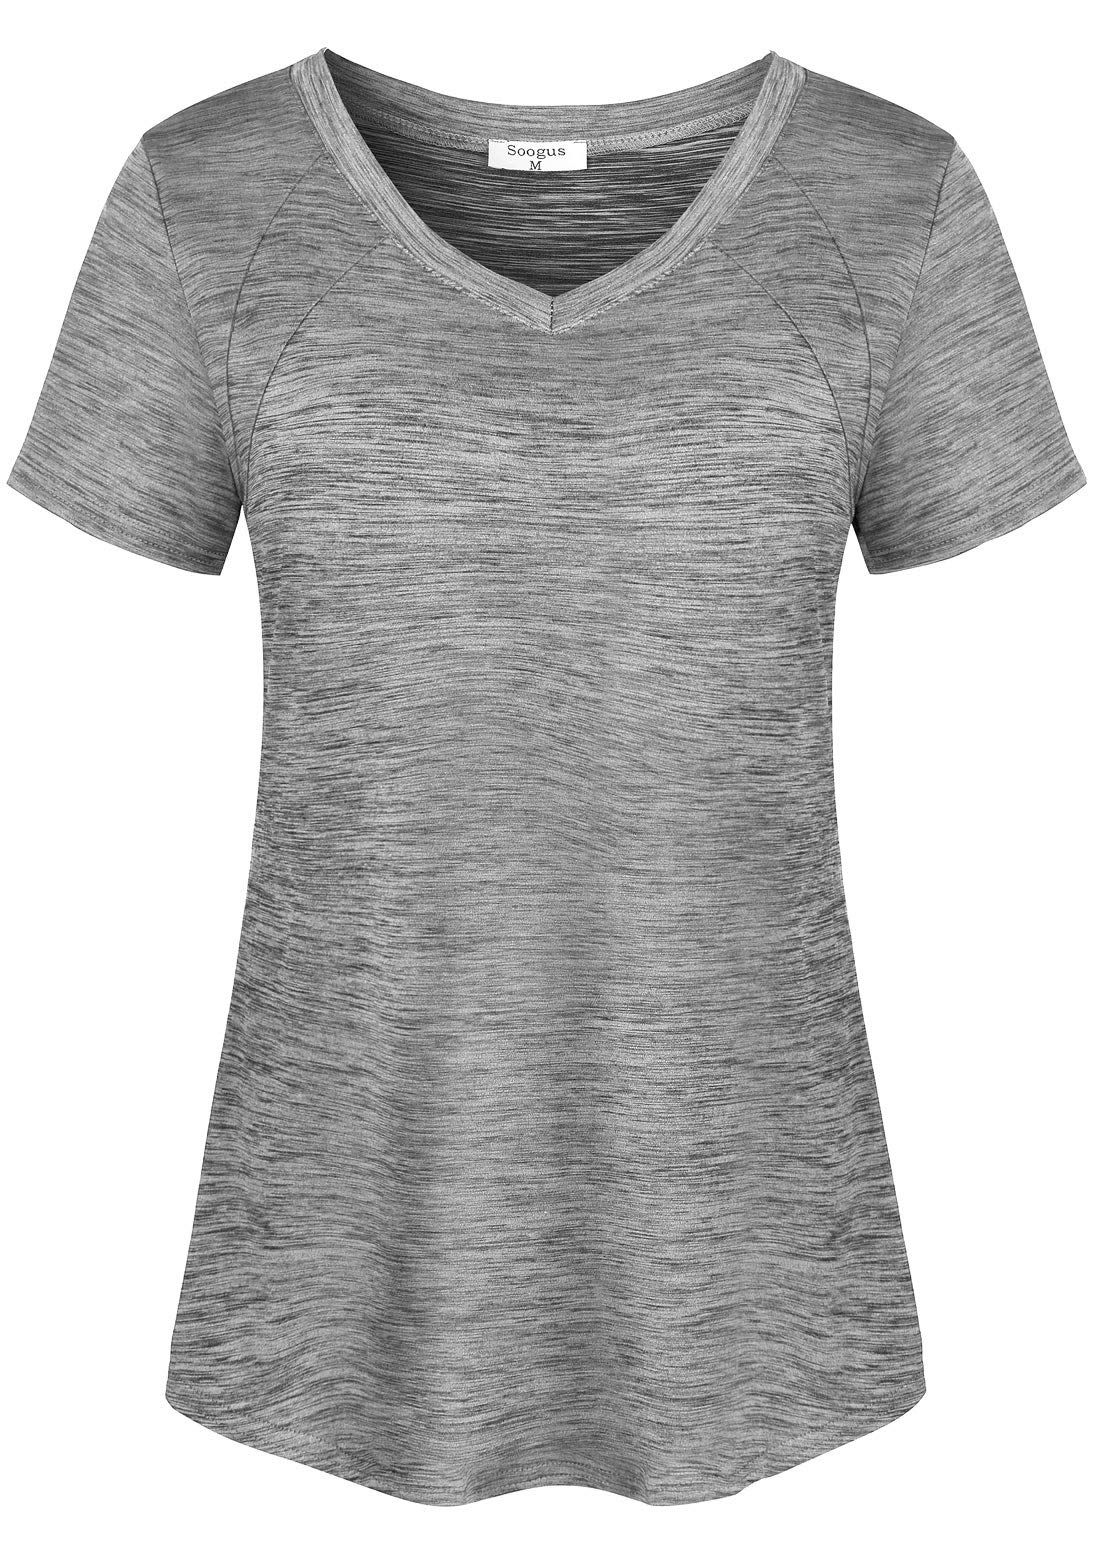 Soogus Womens Workout Tops Short Sleeve Sweat Wicking Quick Dry Athletic Yoga Shirts V Neck Breathable Activewear T-Shirt (Gray, L) by Soogus